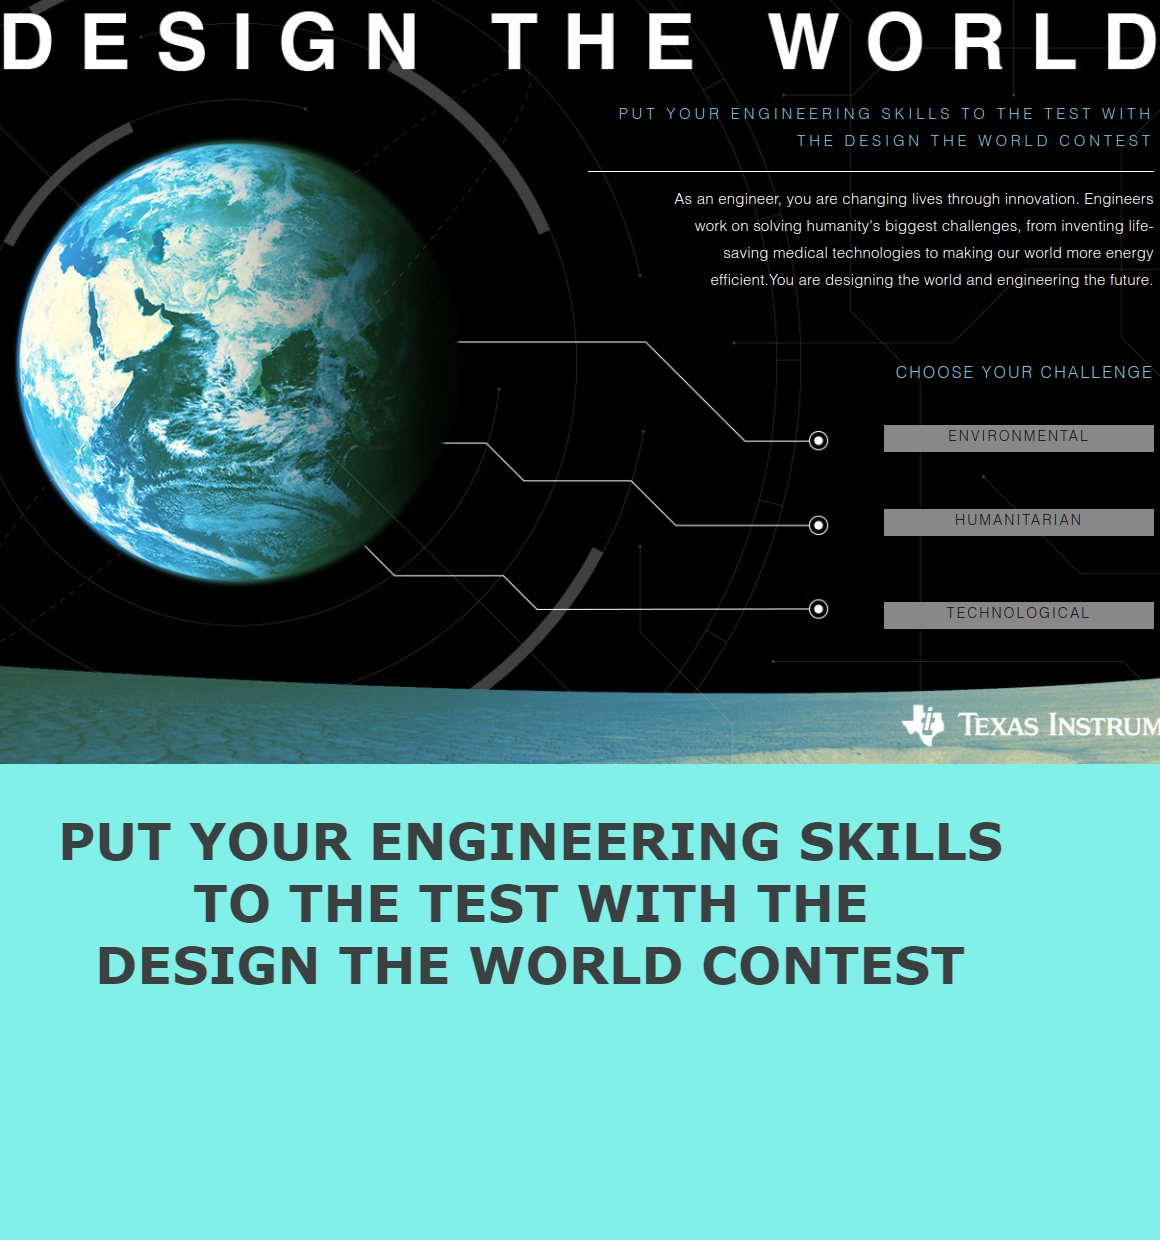 TI- Design the World Contest